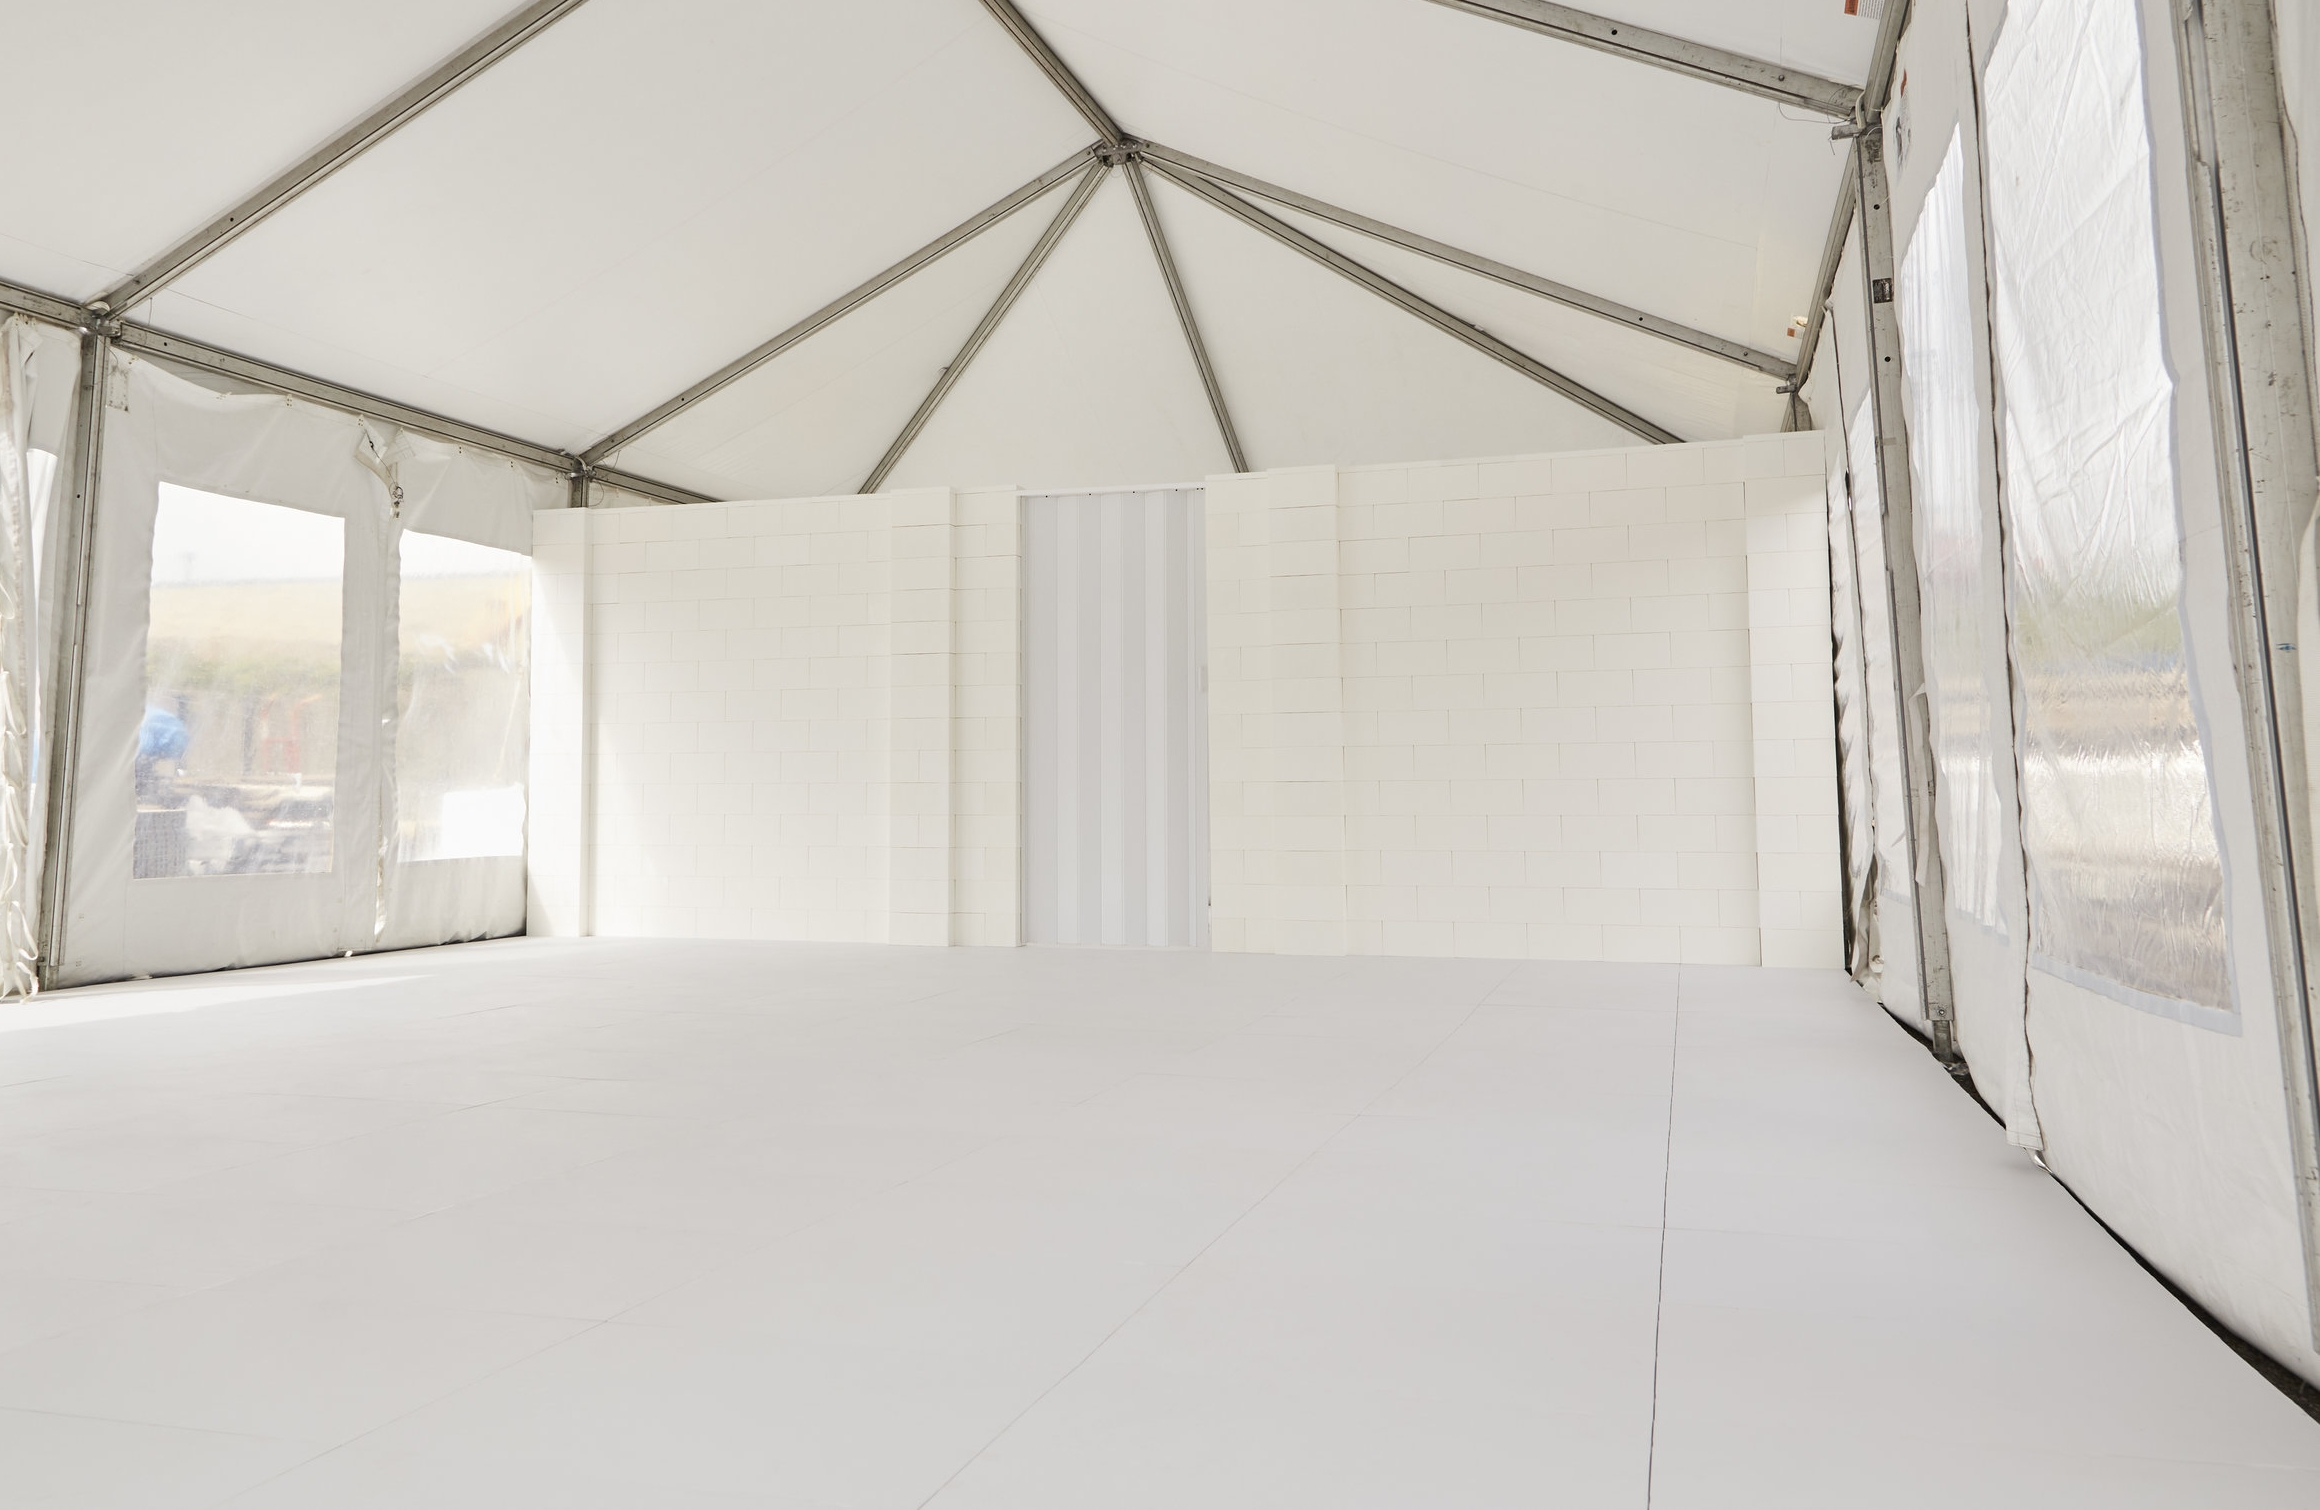 Use EverBase flooring with our EverBlock modular building blocks to create complete tent environments, including interior divider walls to build offices, storage areas, sleeping areas and more.